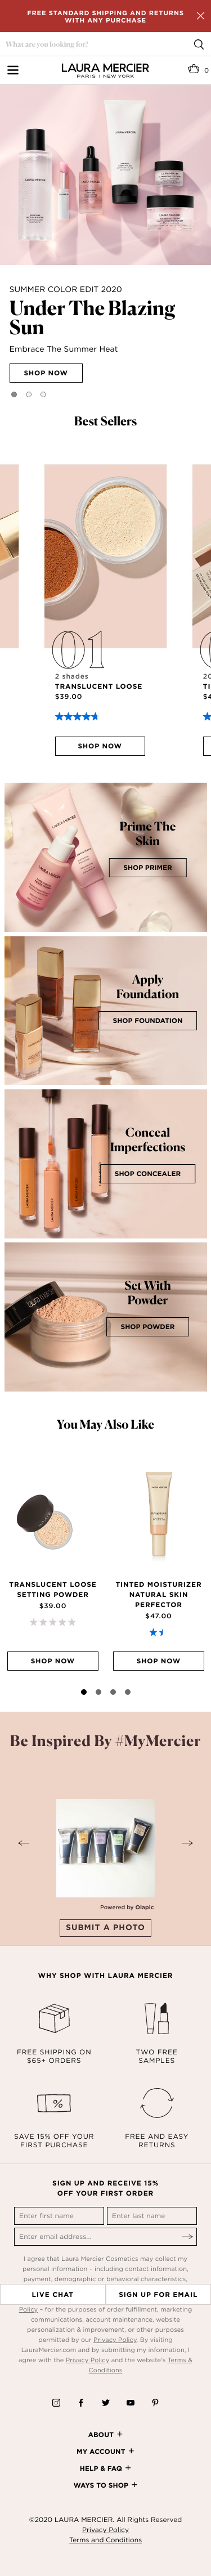 Laura Mercier Coupon